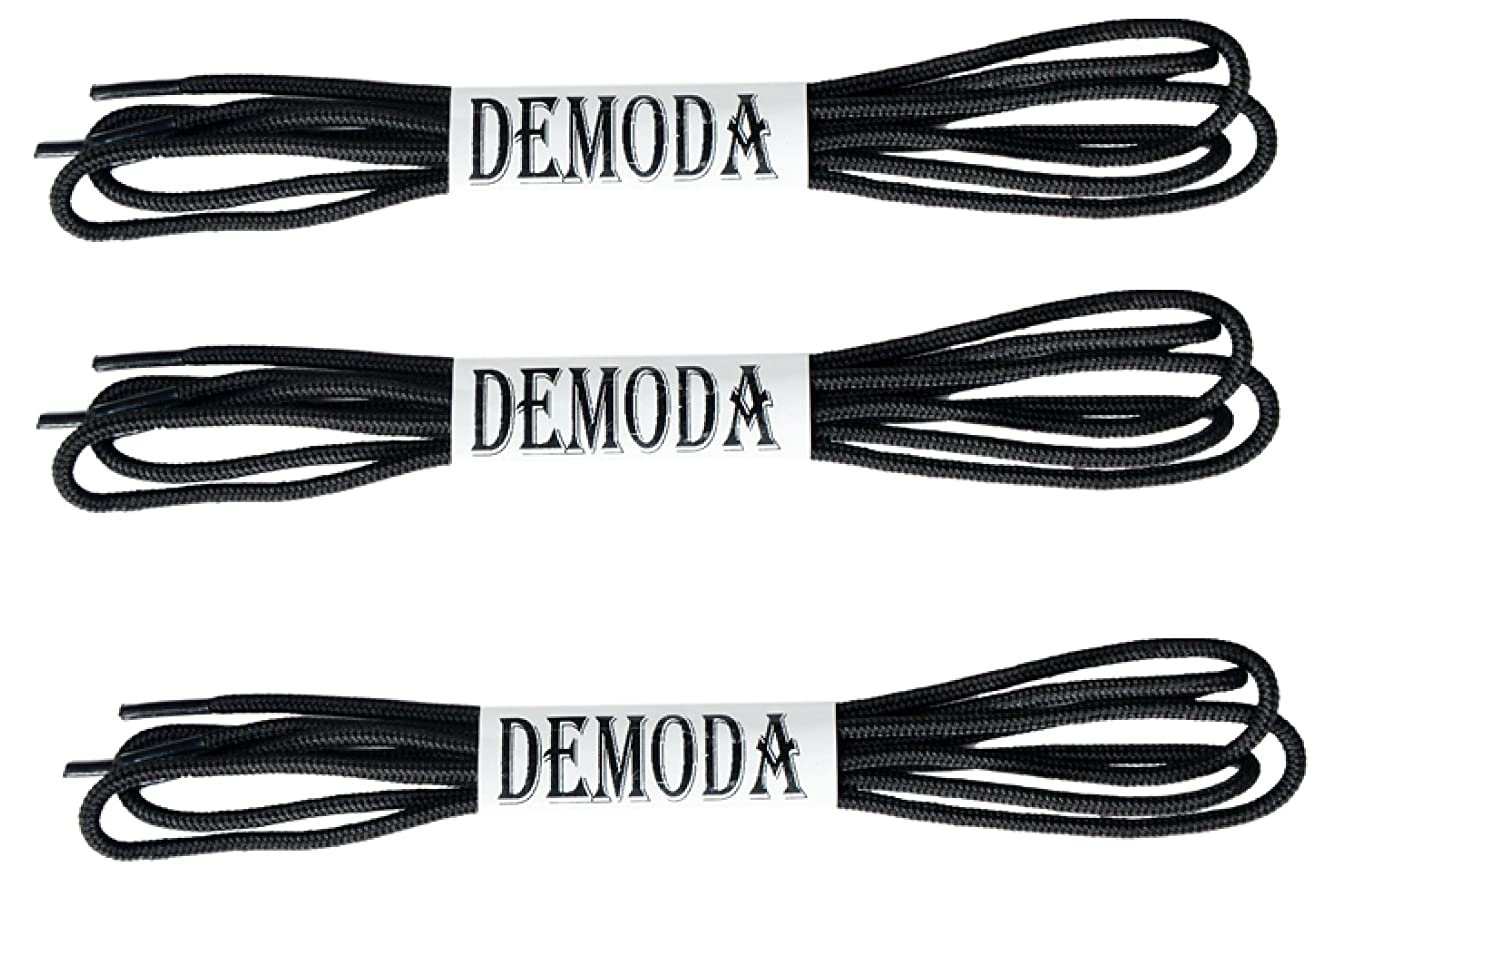 Demoda Black Shoe Laces for Formal Shoes(Pack of 3 pair- Black,Thin Round)